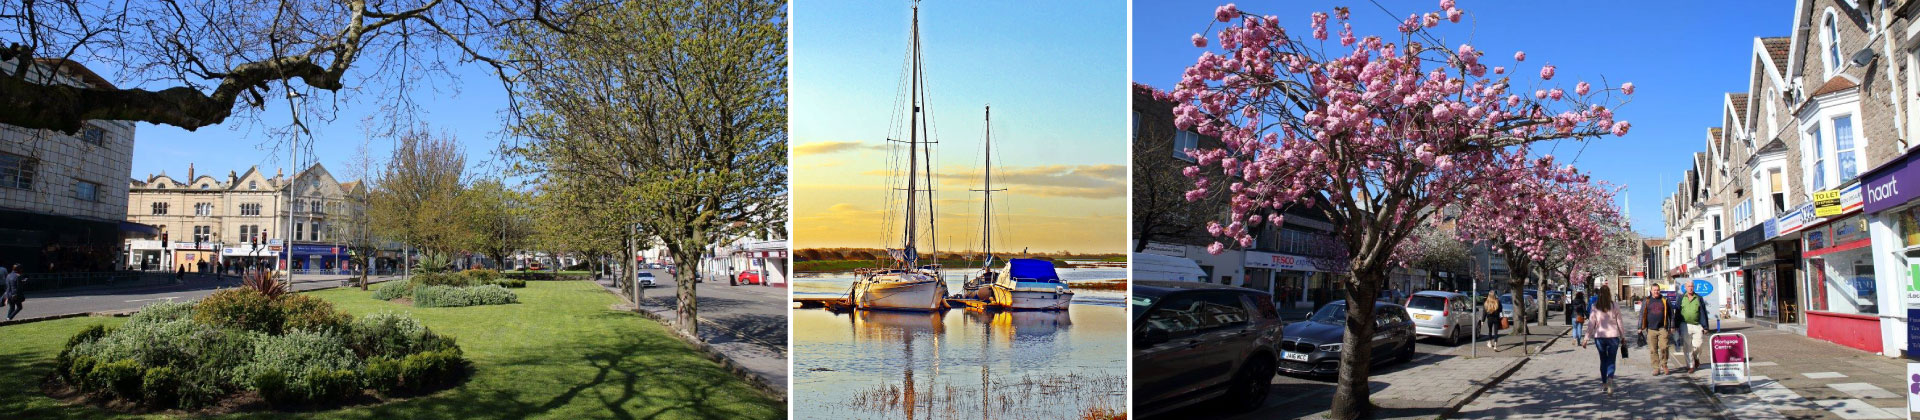 A montage of images showing Weston-super-Mare Green Spaces and Town Centre